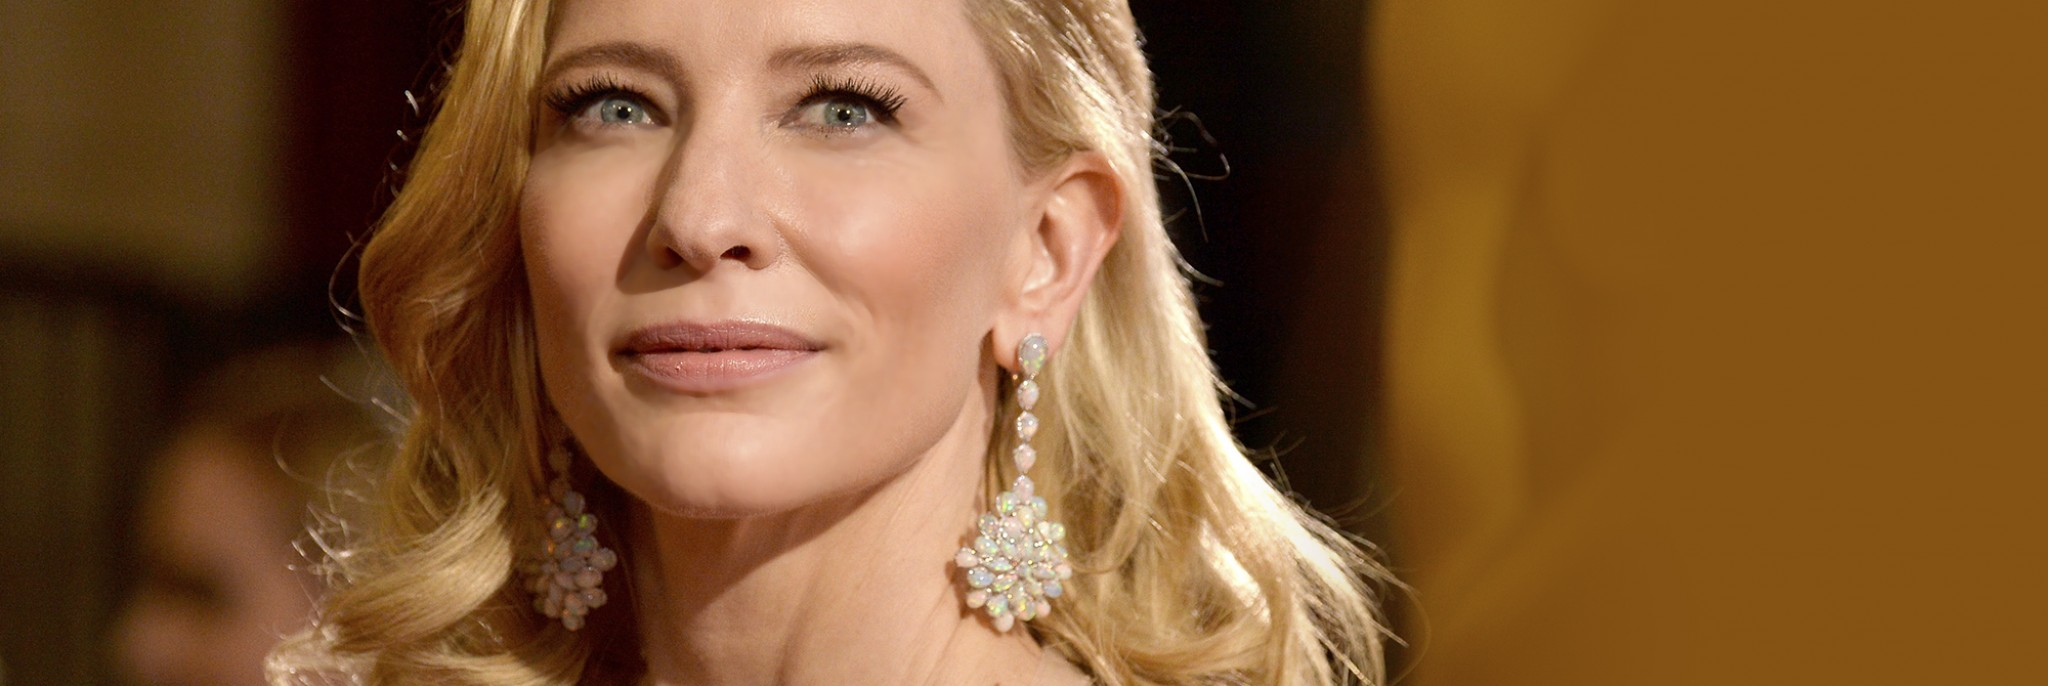 Million Dollar Baby: The Most Expensive Jewelry Ever Worn to the Oscars